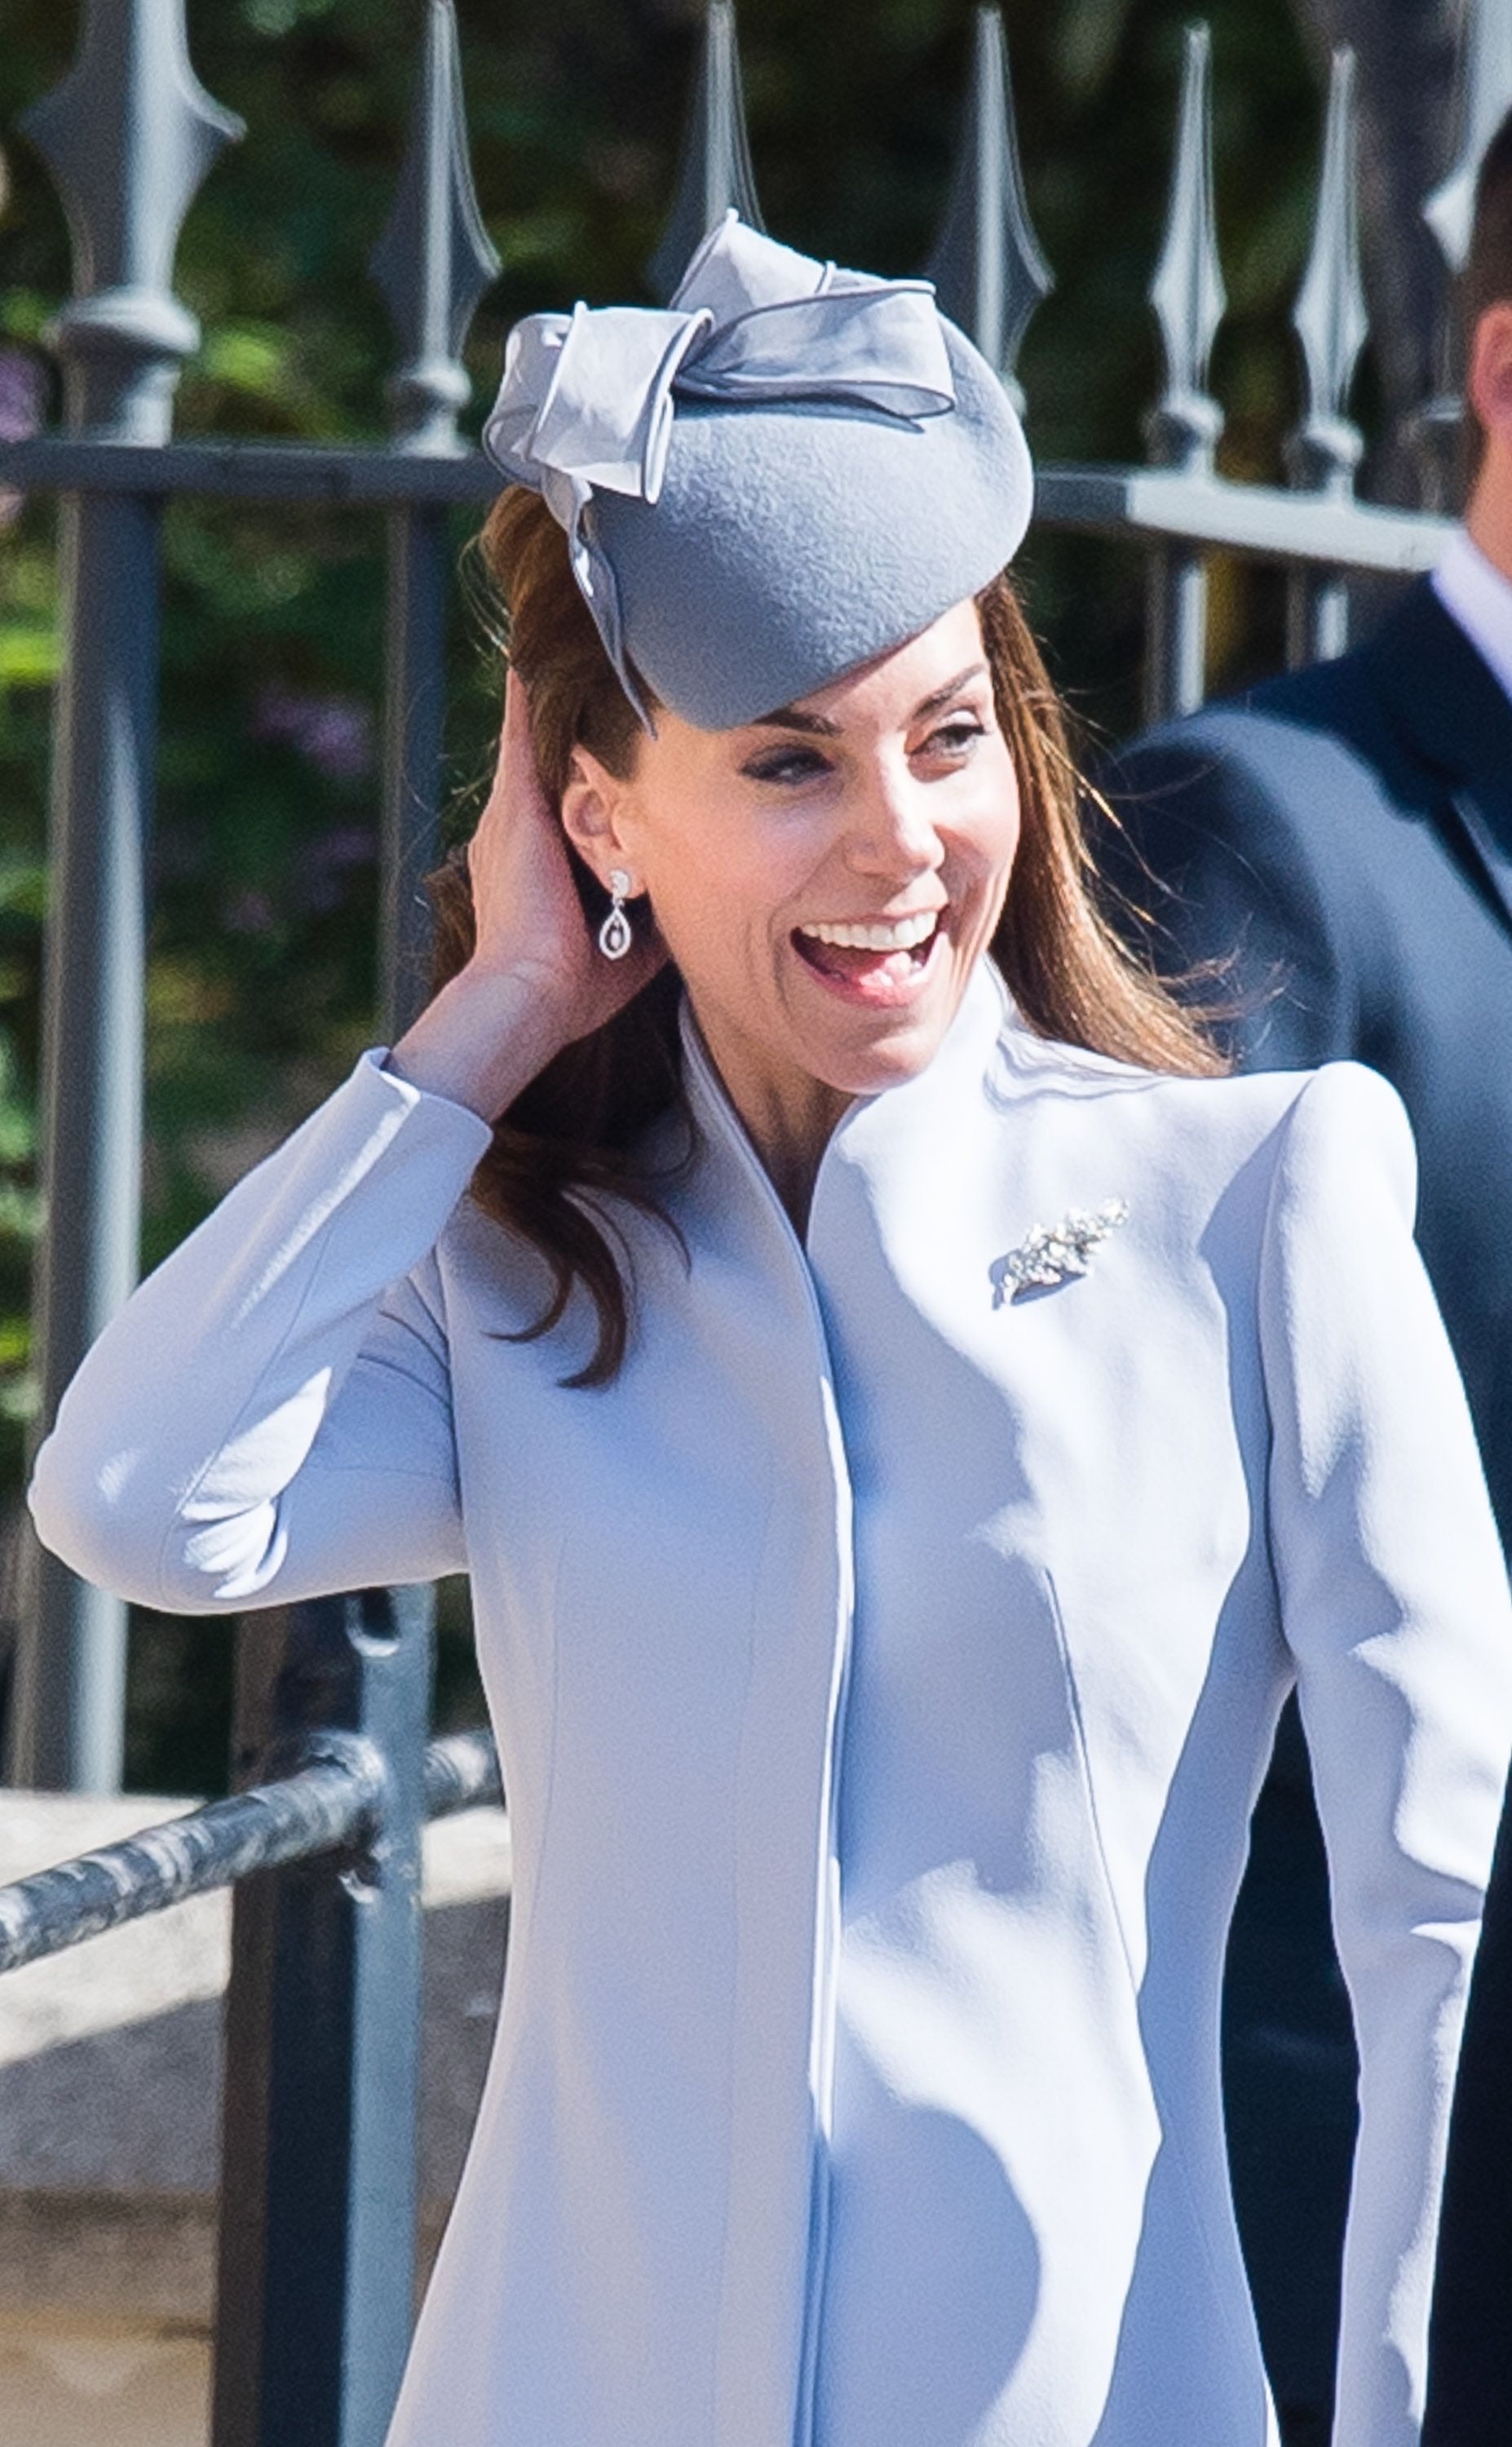 WINDSOR, ENGLAND - APRIL 21:  Catherine, Duchess of Cambridge  attends Easter Sunday service at St George's Chapel on April 21, 2019 in Windsor, England. (Photo by Samir Hussein/Samir Hussein/WireImage)